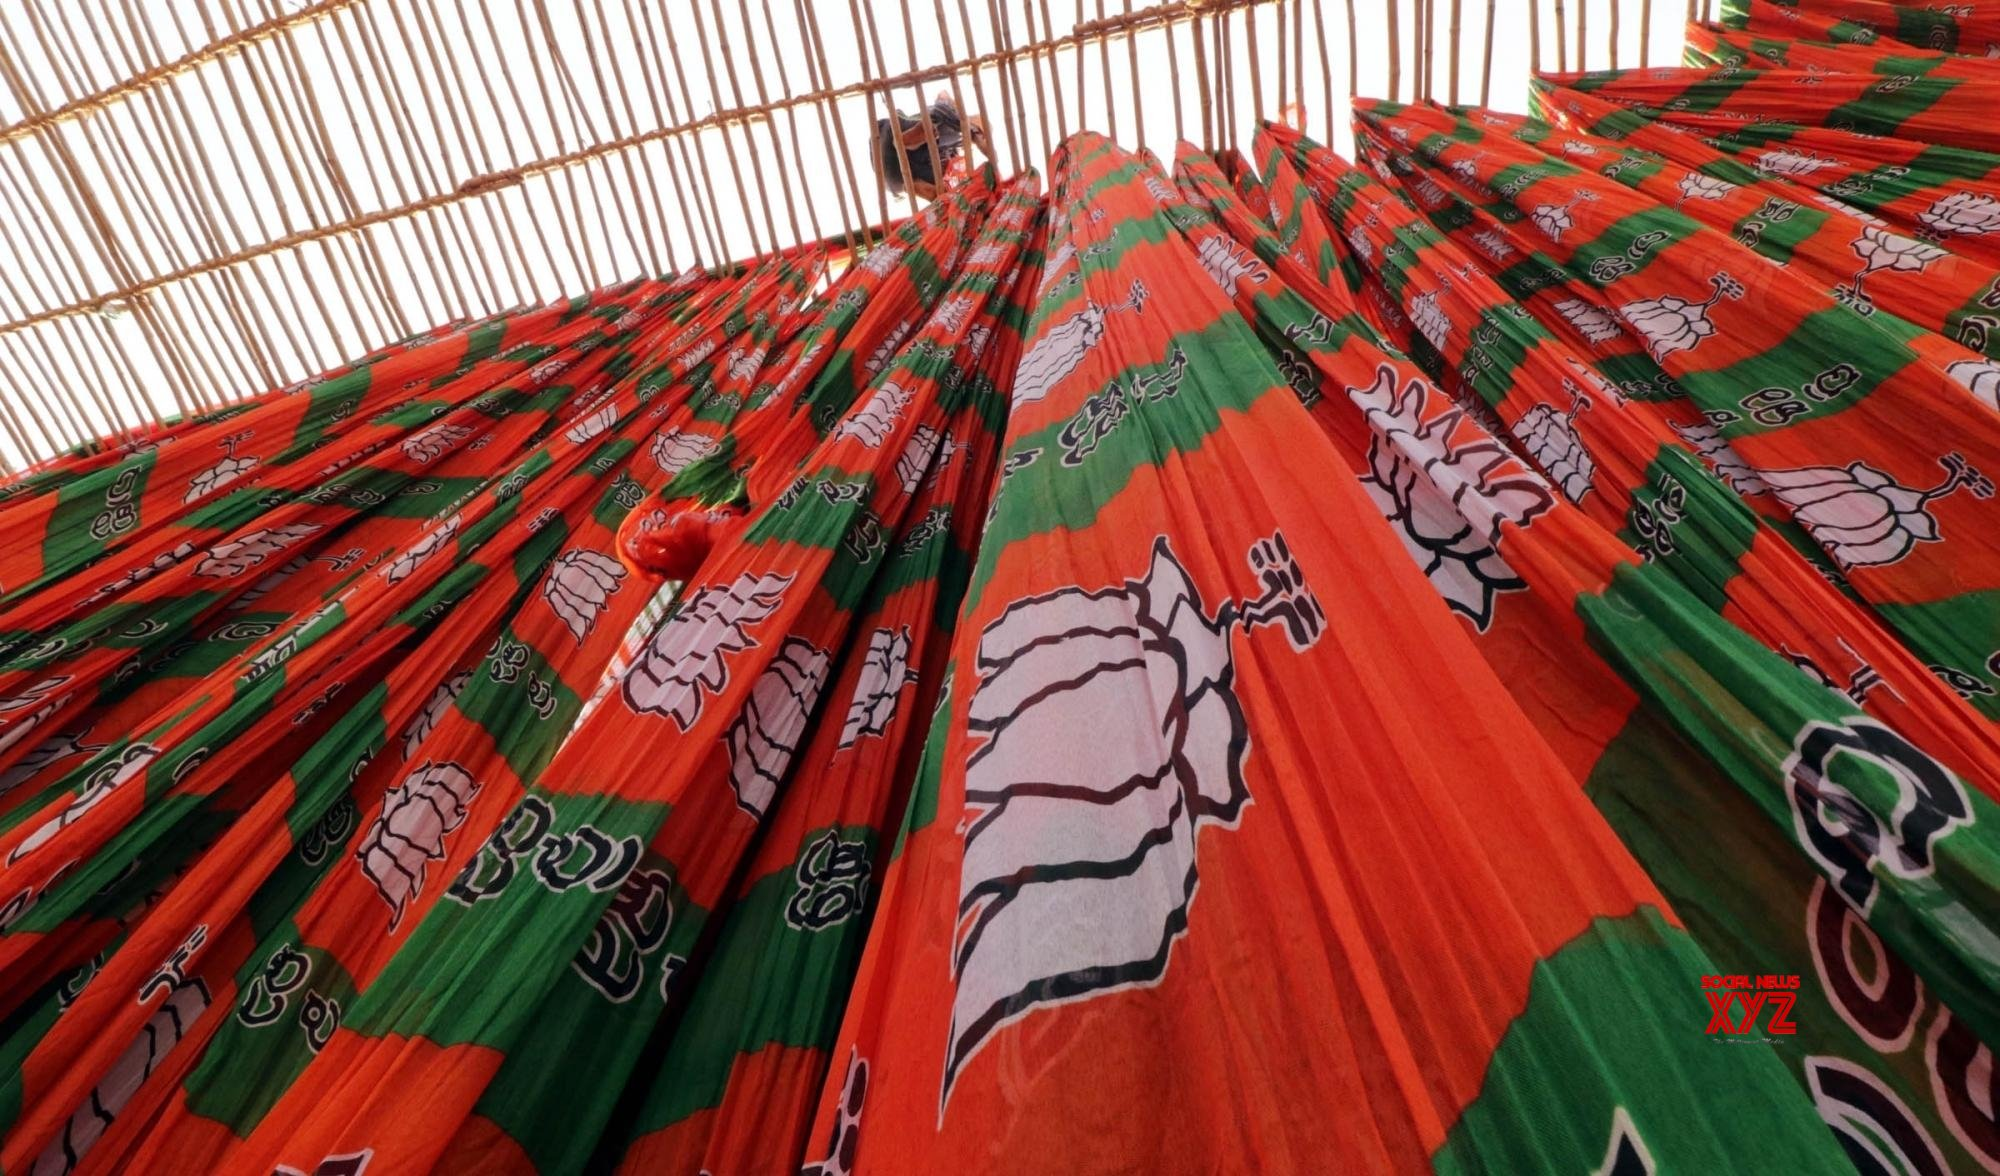 BJP to suffer a net loss of seats this polls, says report